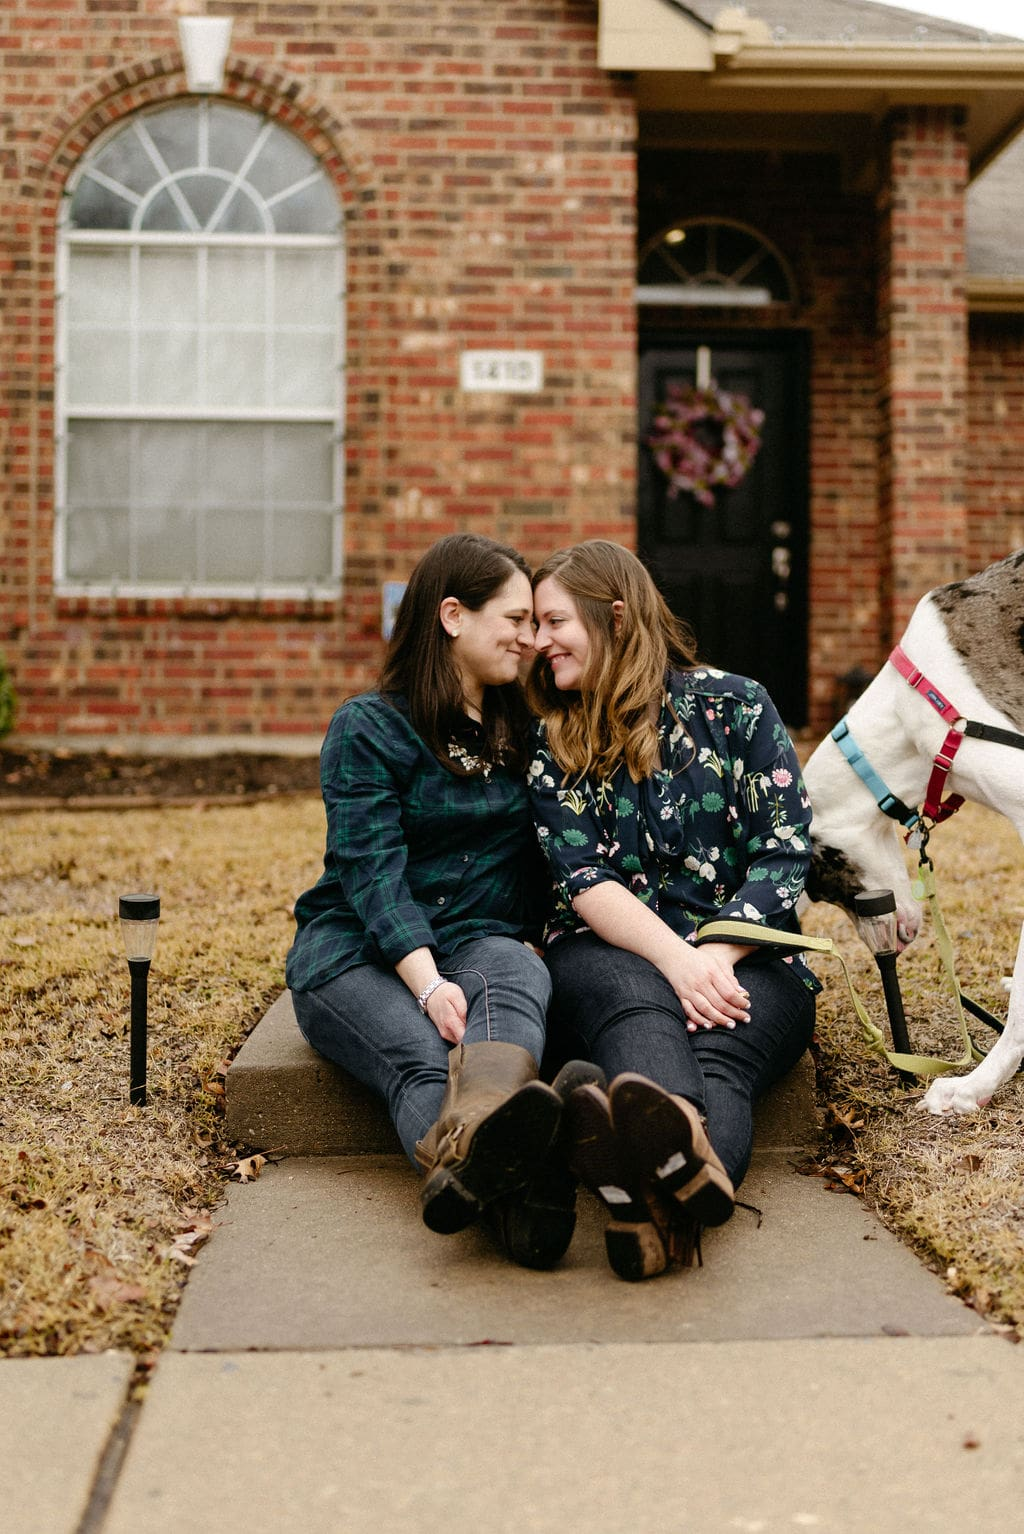 Married LGBTQ Couple At Their Home